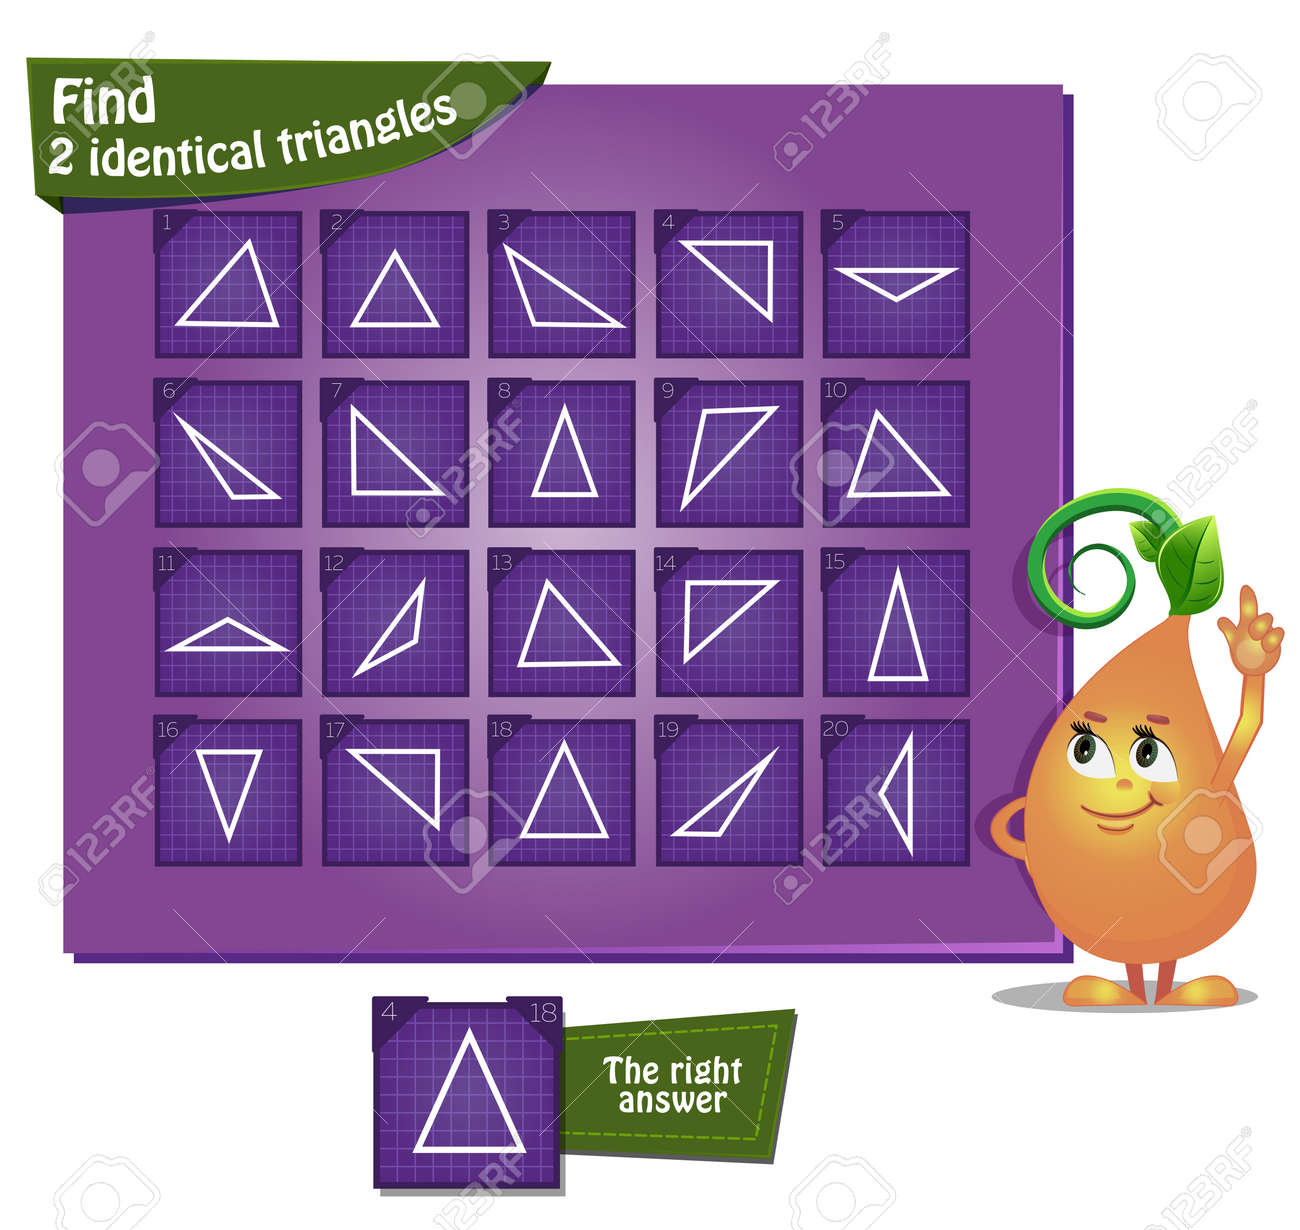 Visual Game For Children And Adults Task The Find 2 Identical